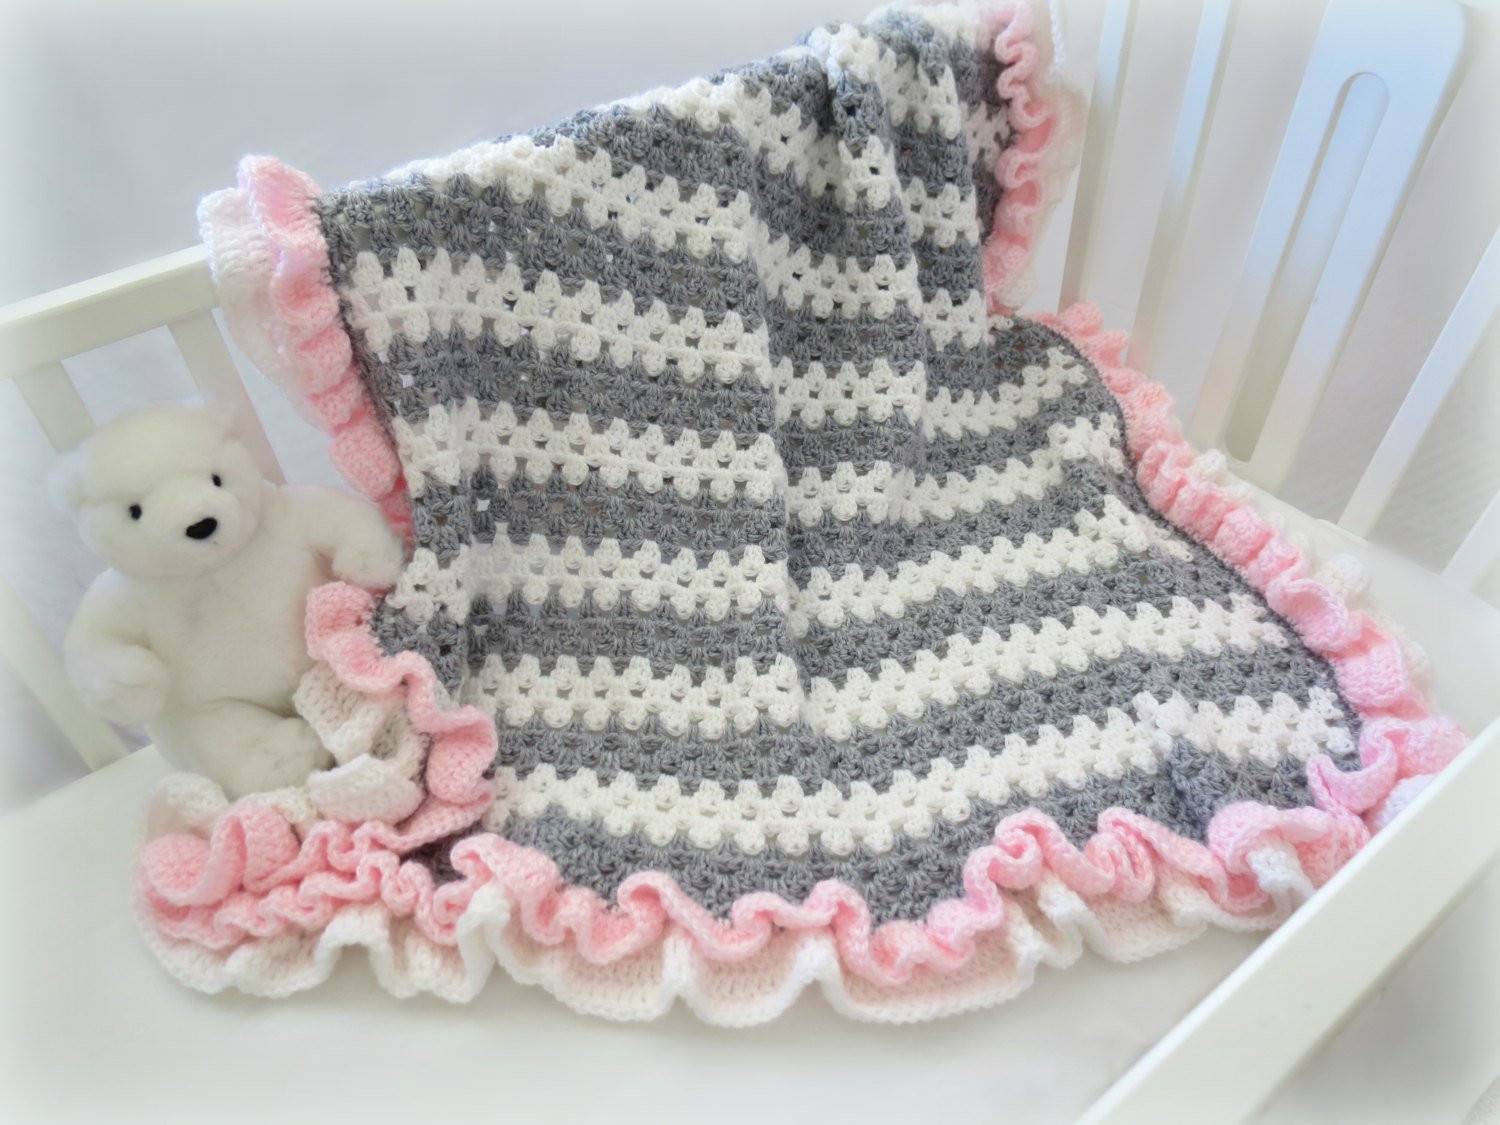 Baby Boy Crochet Blanket Patterns New Crochet Baby Blanket Pattern Baby Crochet Blanket Afghan Of Baby Boy Crochet Blanket Patterns New Beautiful Baby Boy Blanket Crochet Pattern for Pram